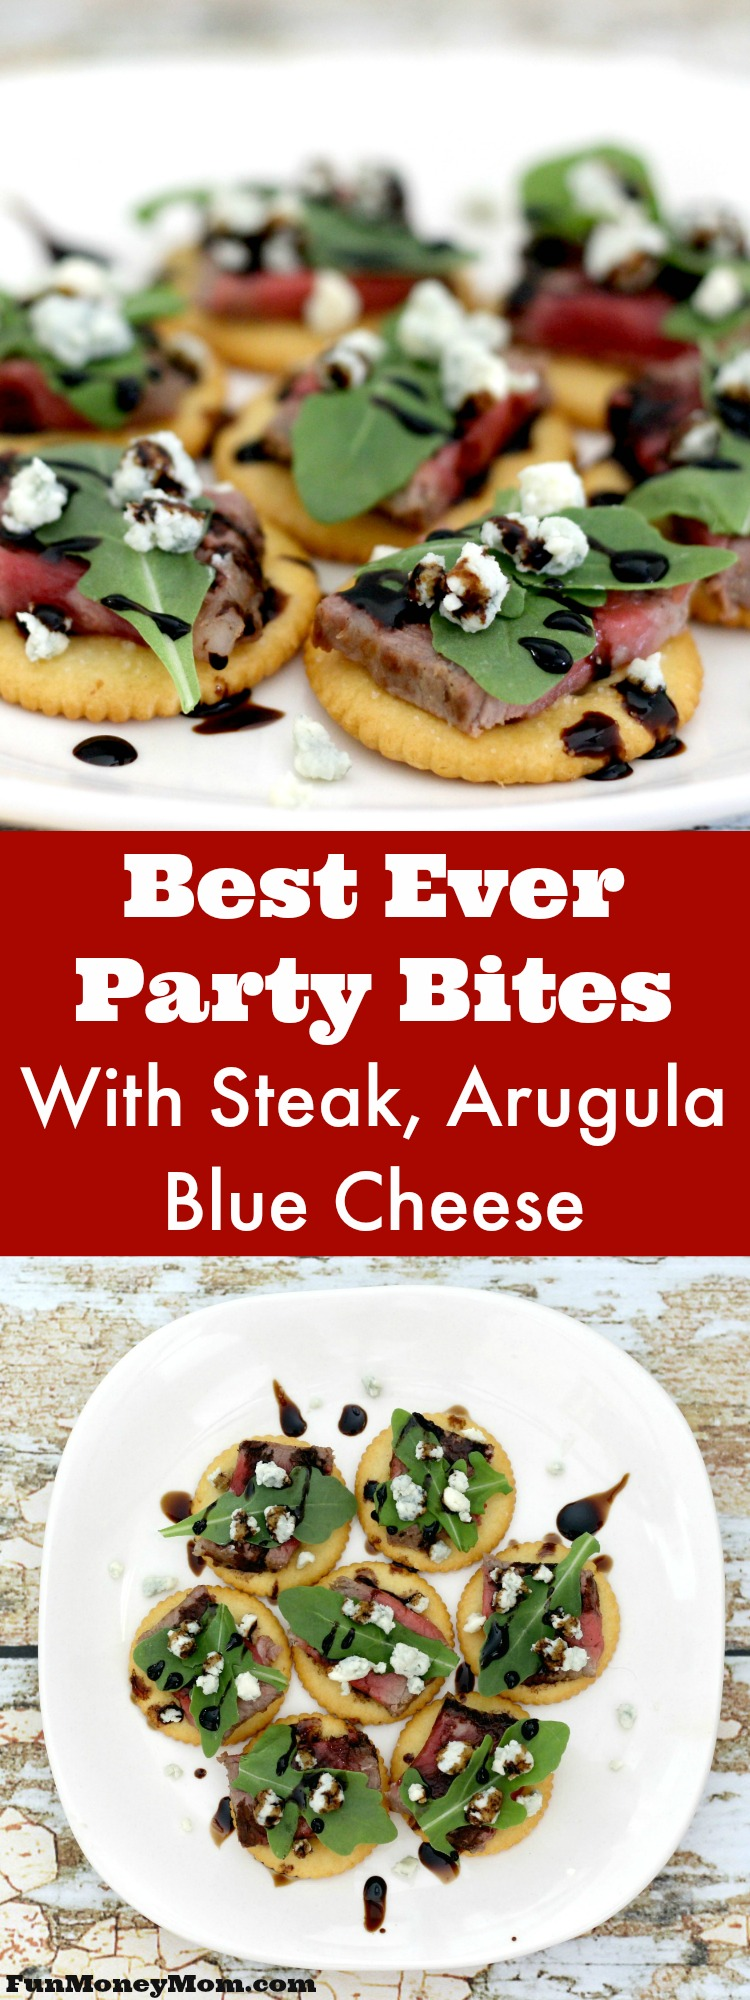 These party crackers with steak, arugula and blue cheese are one of my new favorite party foods! Not only is this an easy appetizer recipe, it's absolutely delicious too! #RITZspiration #ad